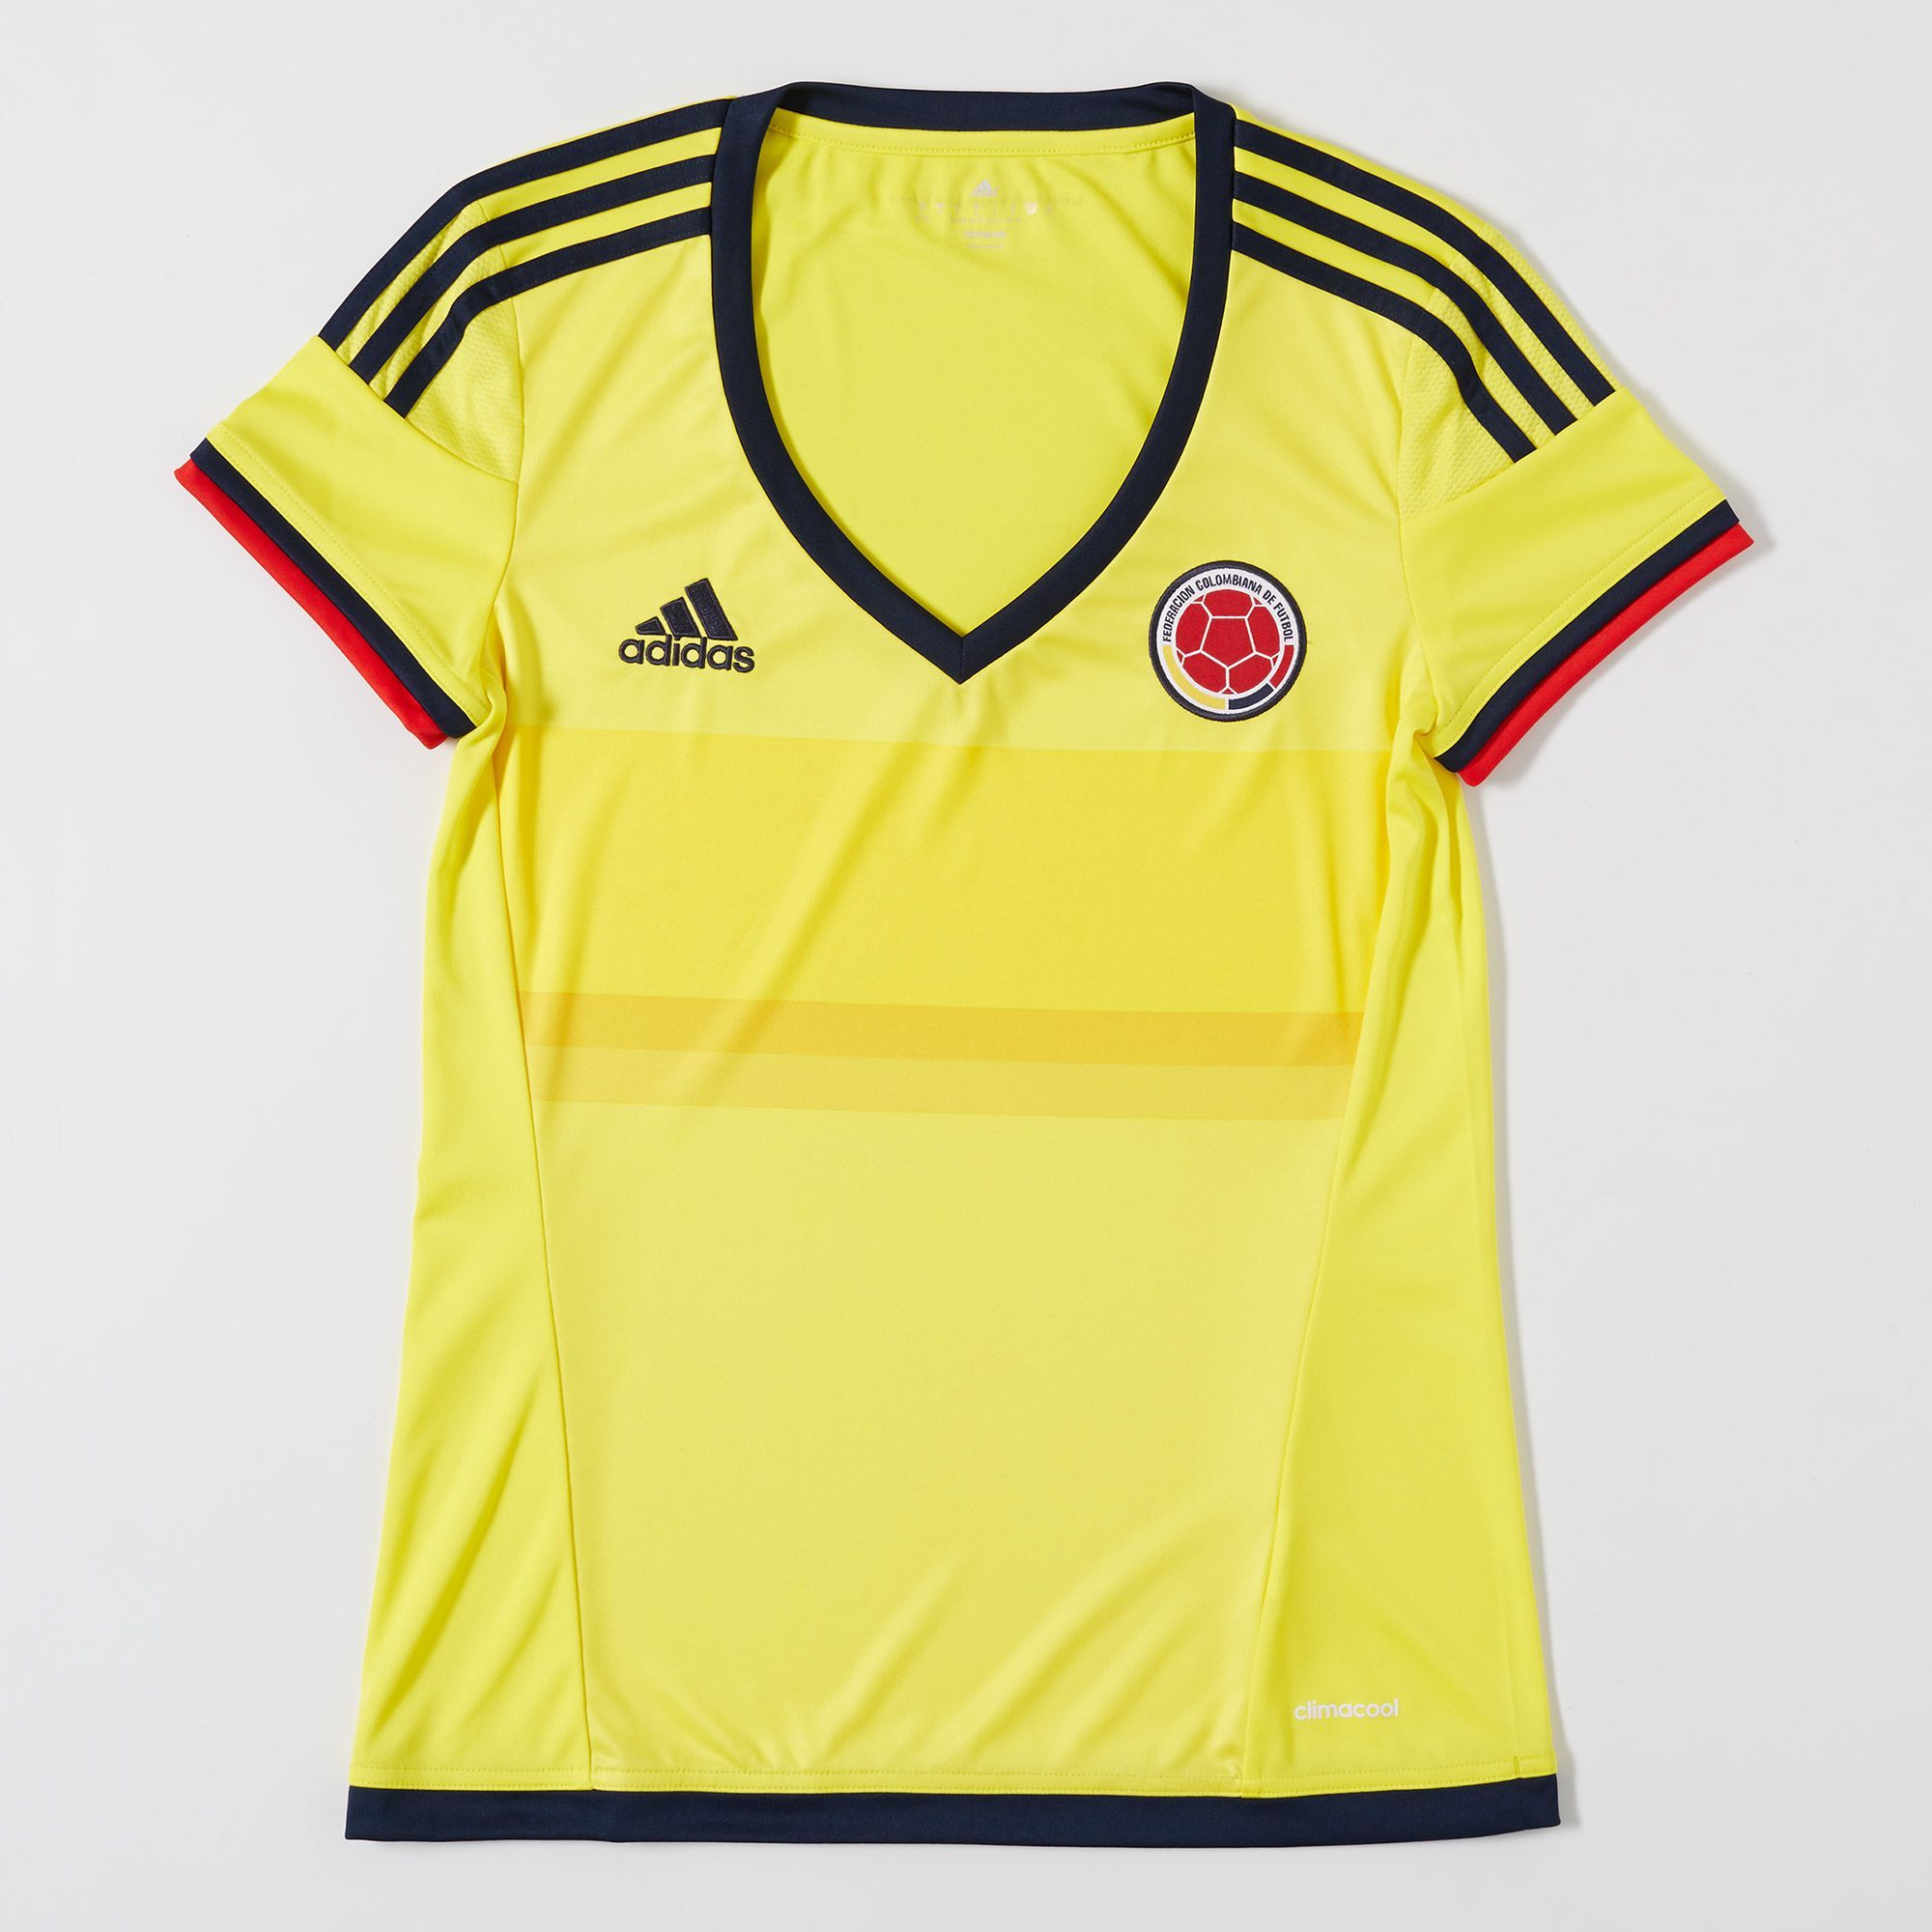 Camiseta Local Colombia | Camiseta seleccion, Camisetas ...